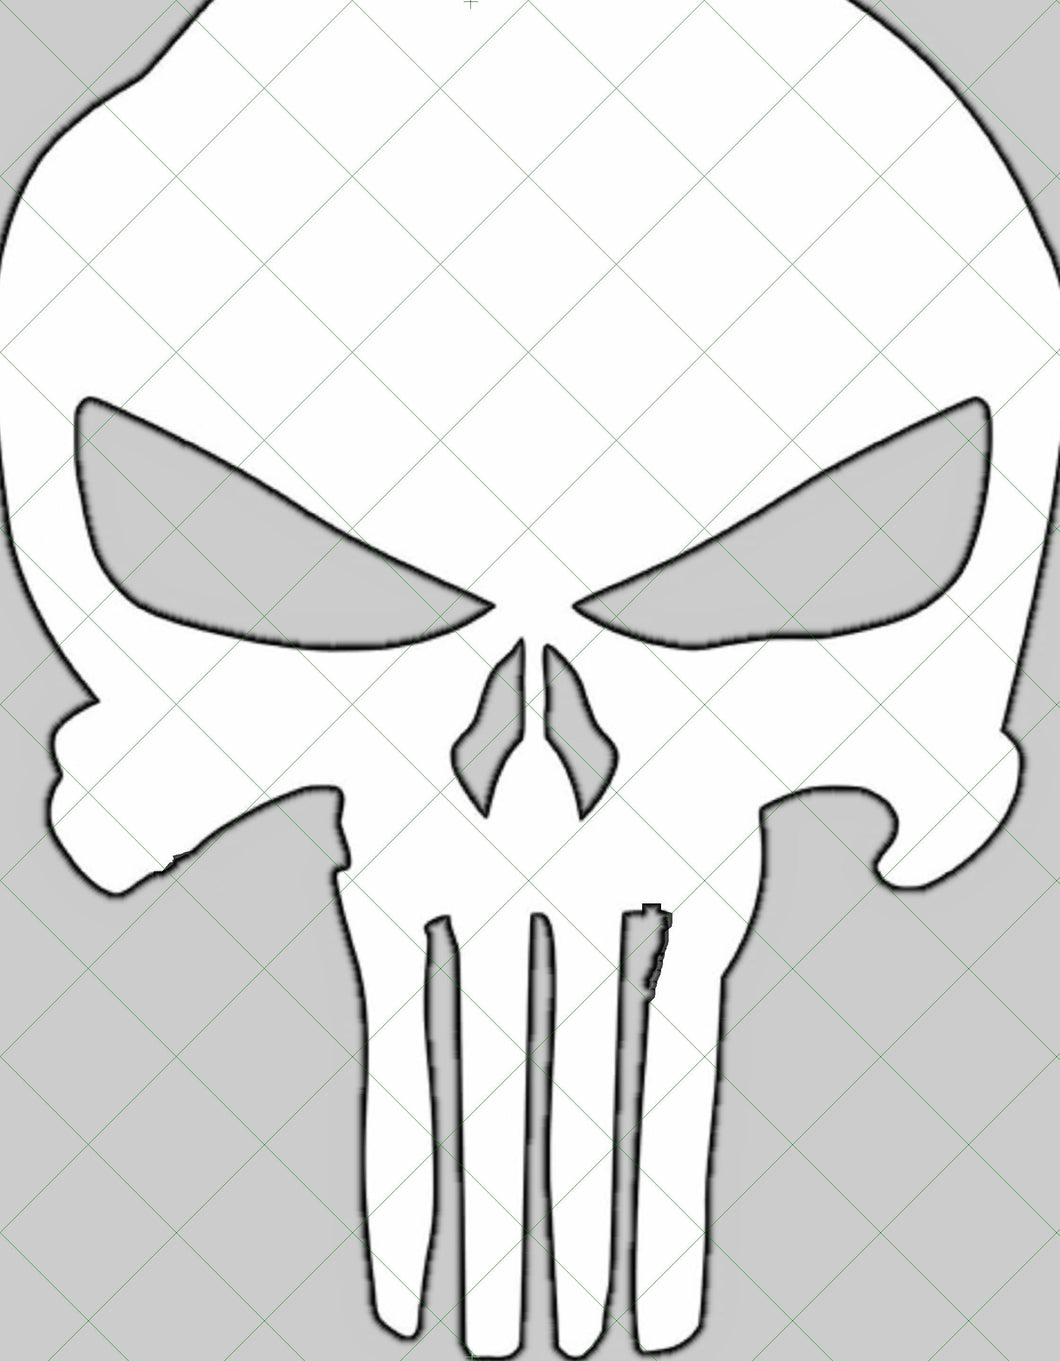 Full Size 24 in x 30 in Punisher Style Template